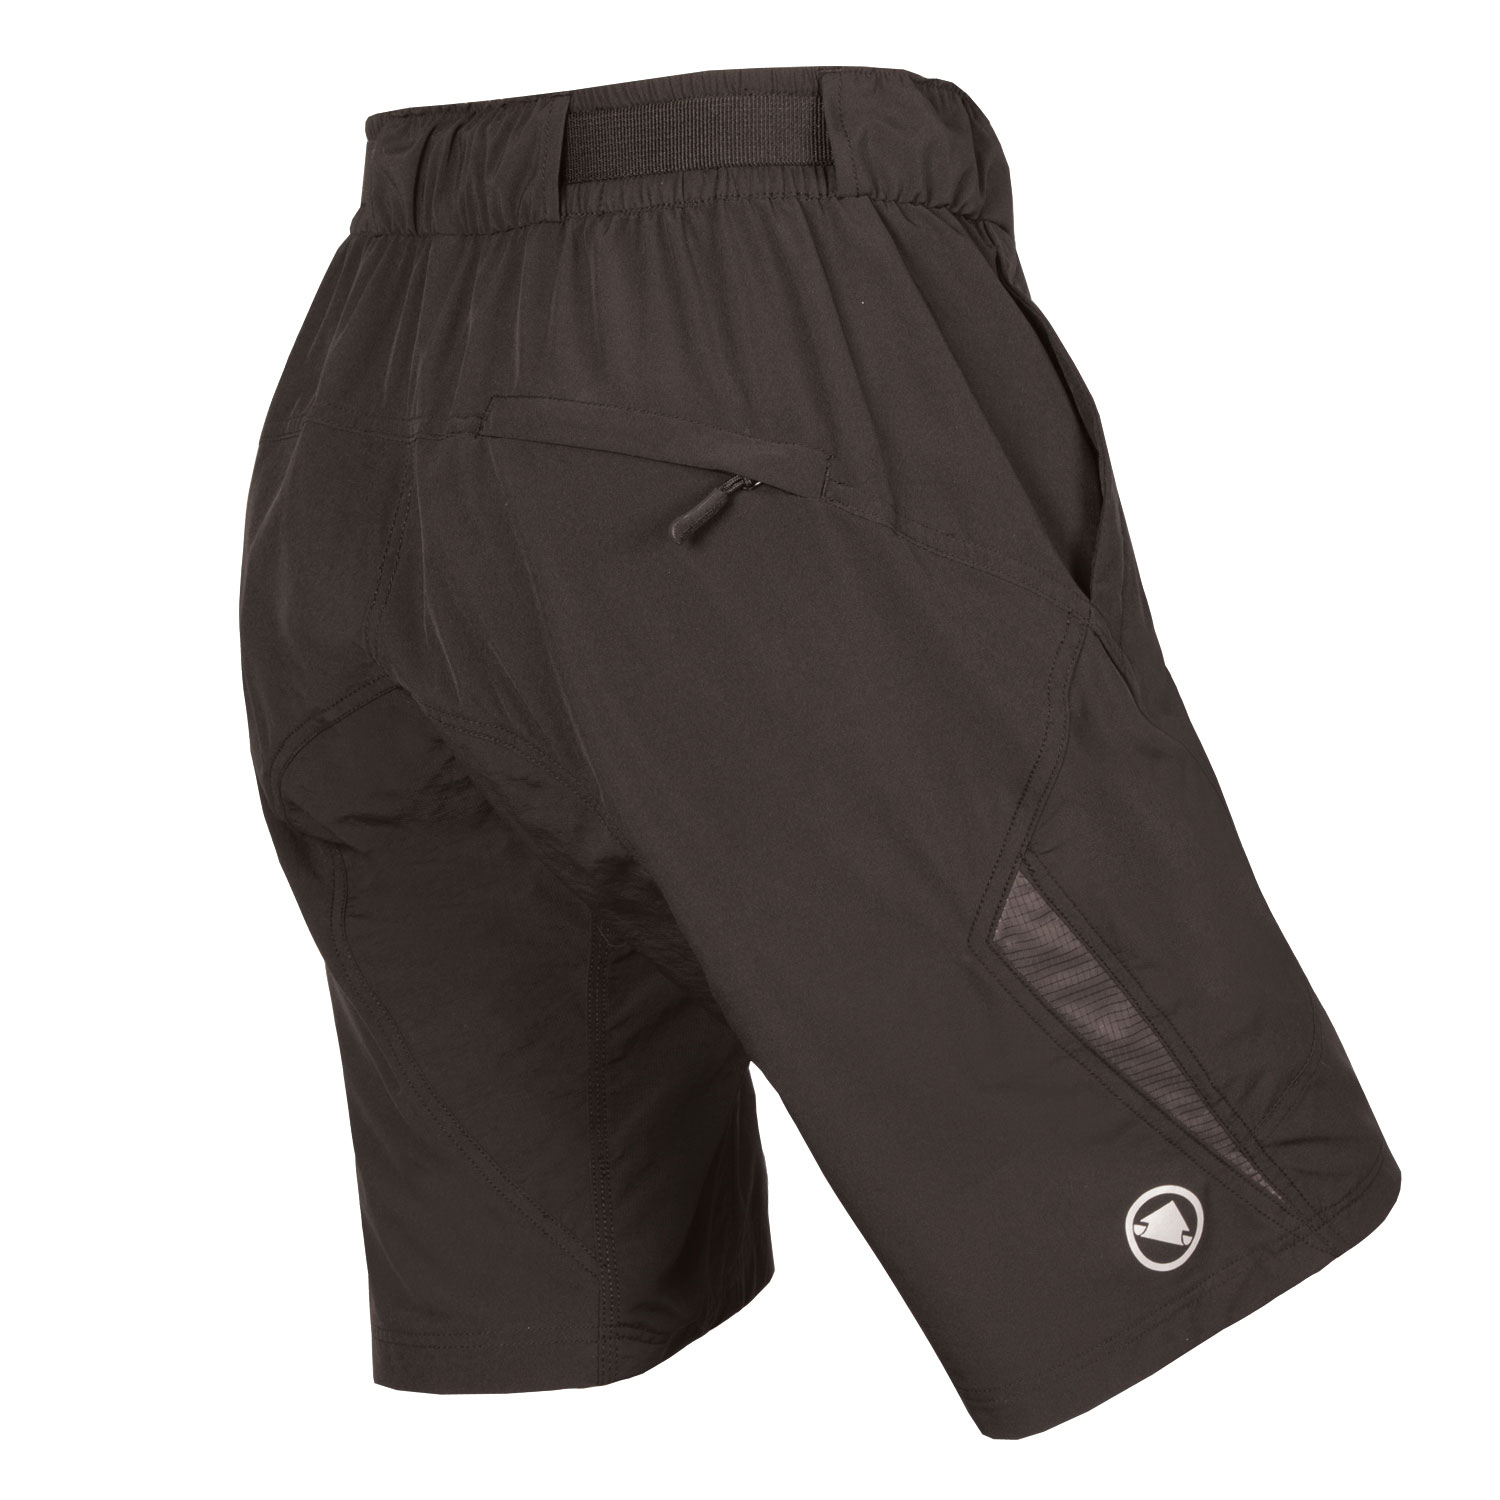 Women's Hummvee Lite Short II with liner Black